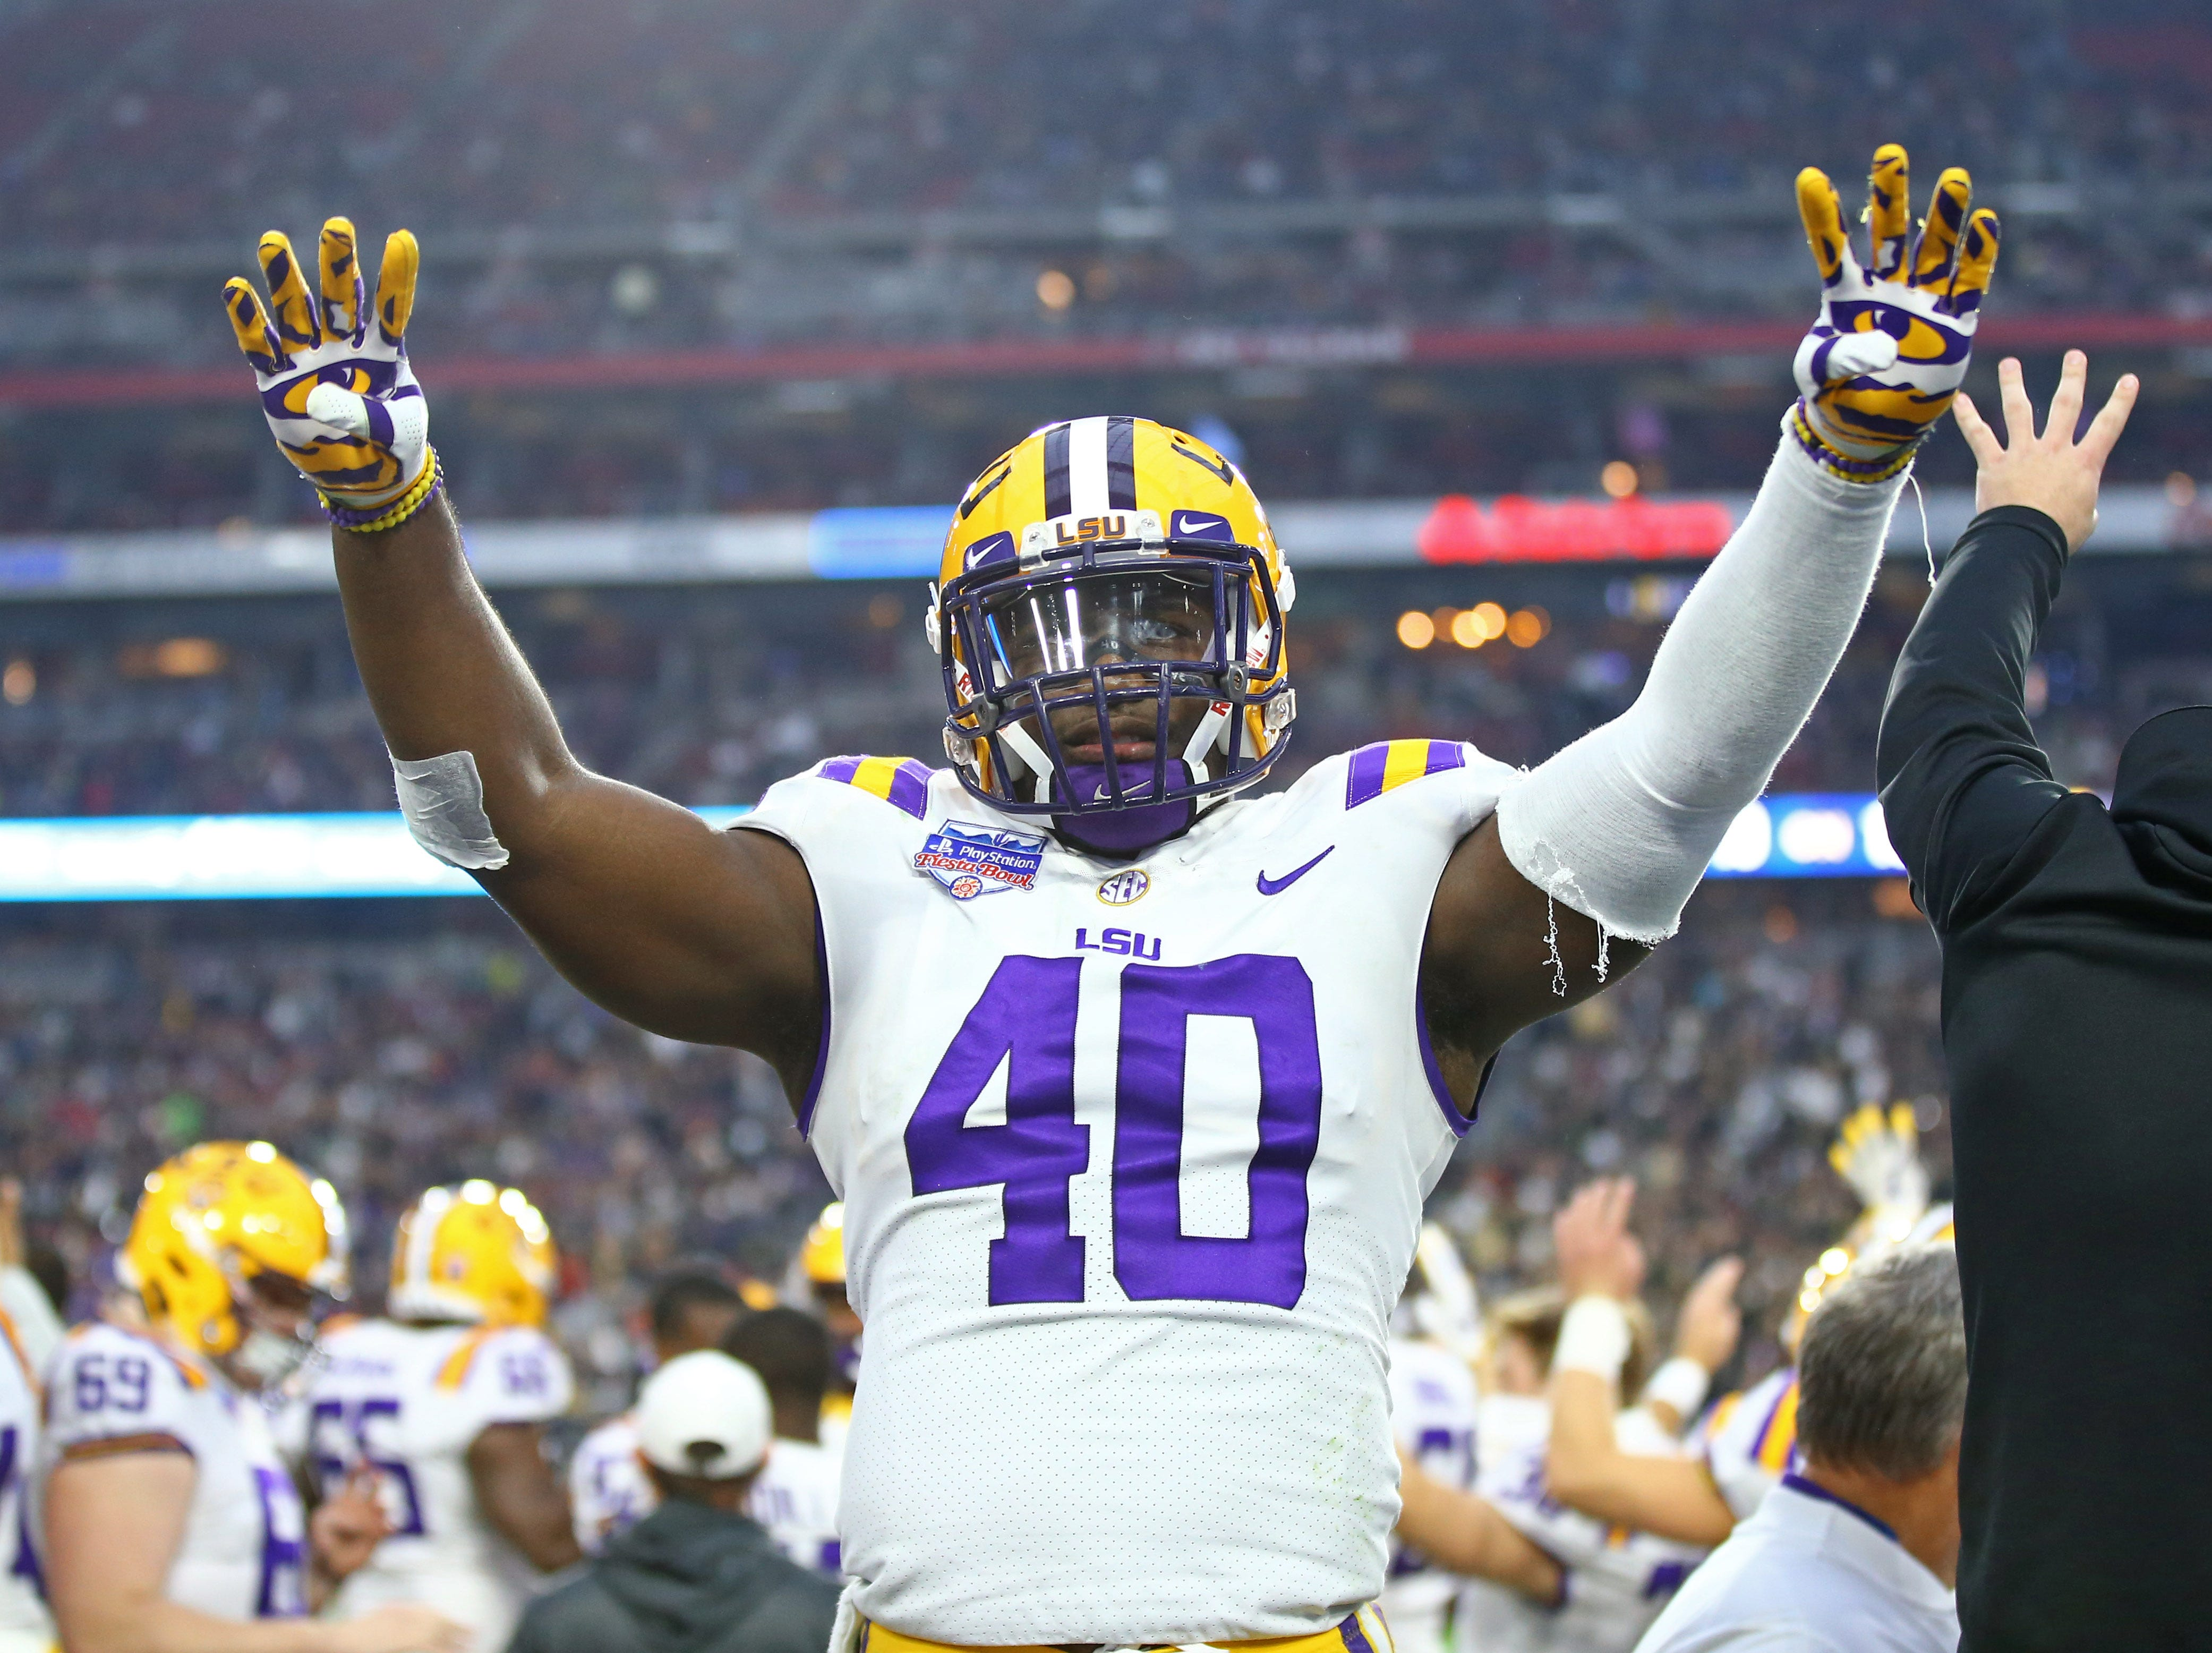 LSU Tigers linebacker Devin White (40) reacts in the fourth quarter against the UCF Knights in the Fiesta Bowl.